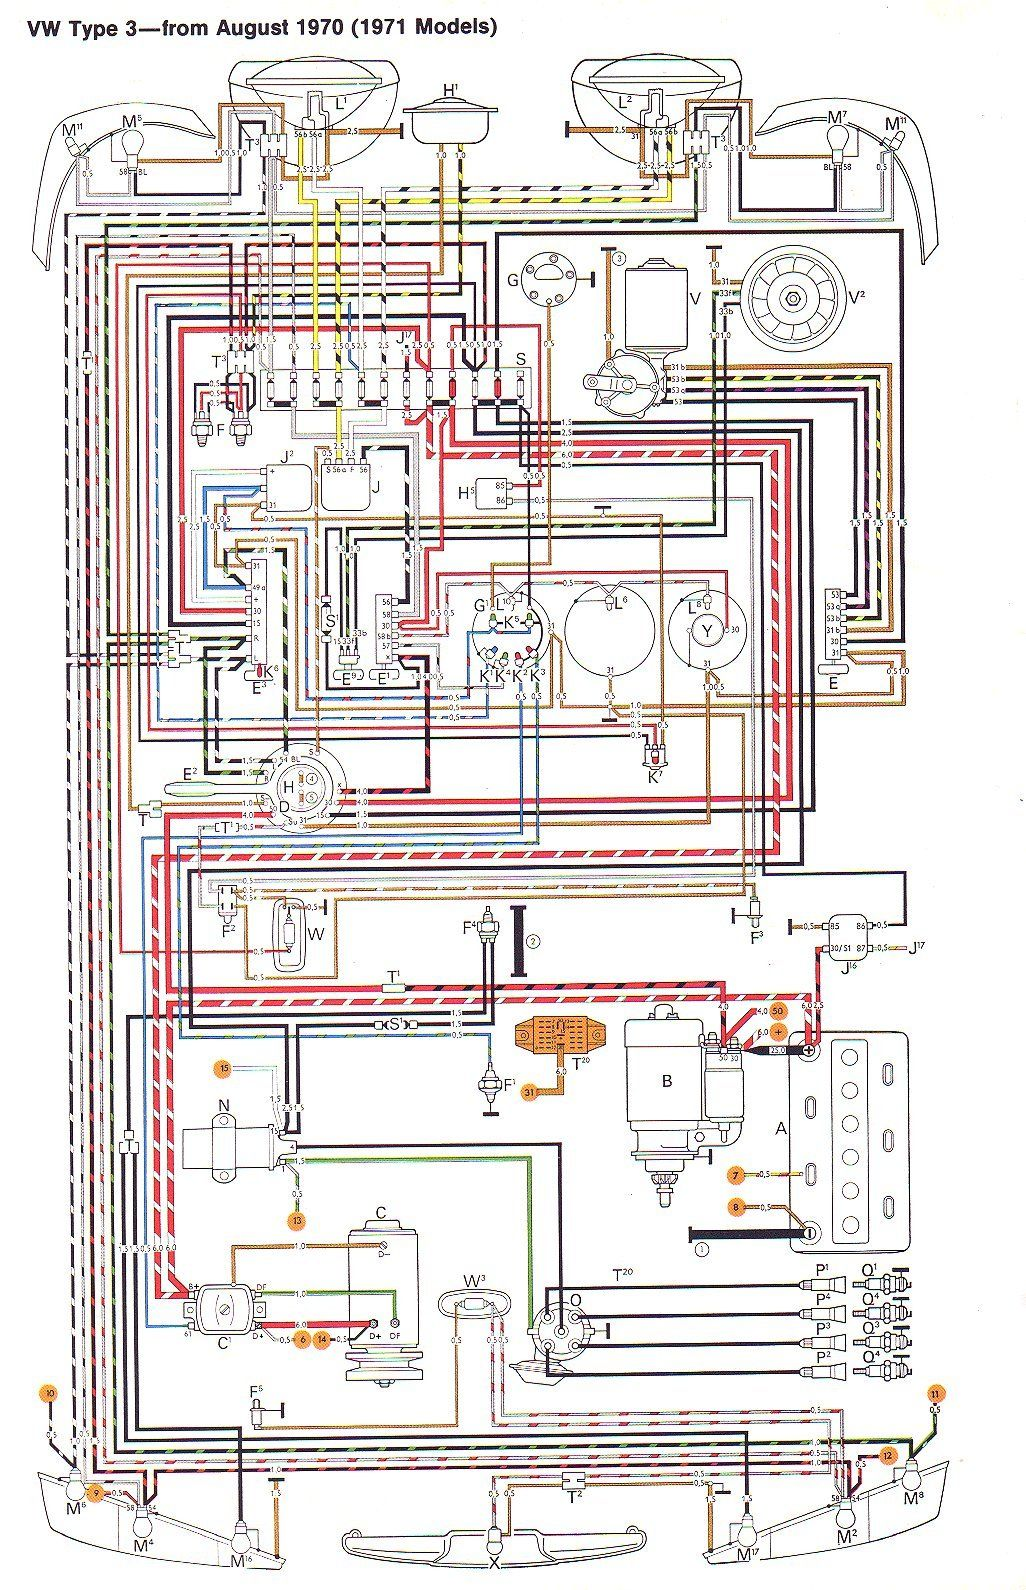 small resolution of 1968 volkswagen wiring diagram wiring diagrams konsultwiring diagram for volkswagen van wiring diagram centre 1968 vw